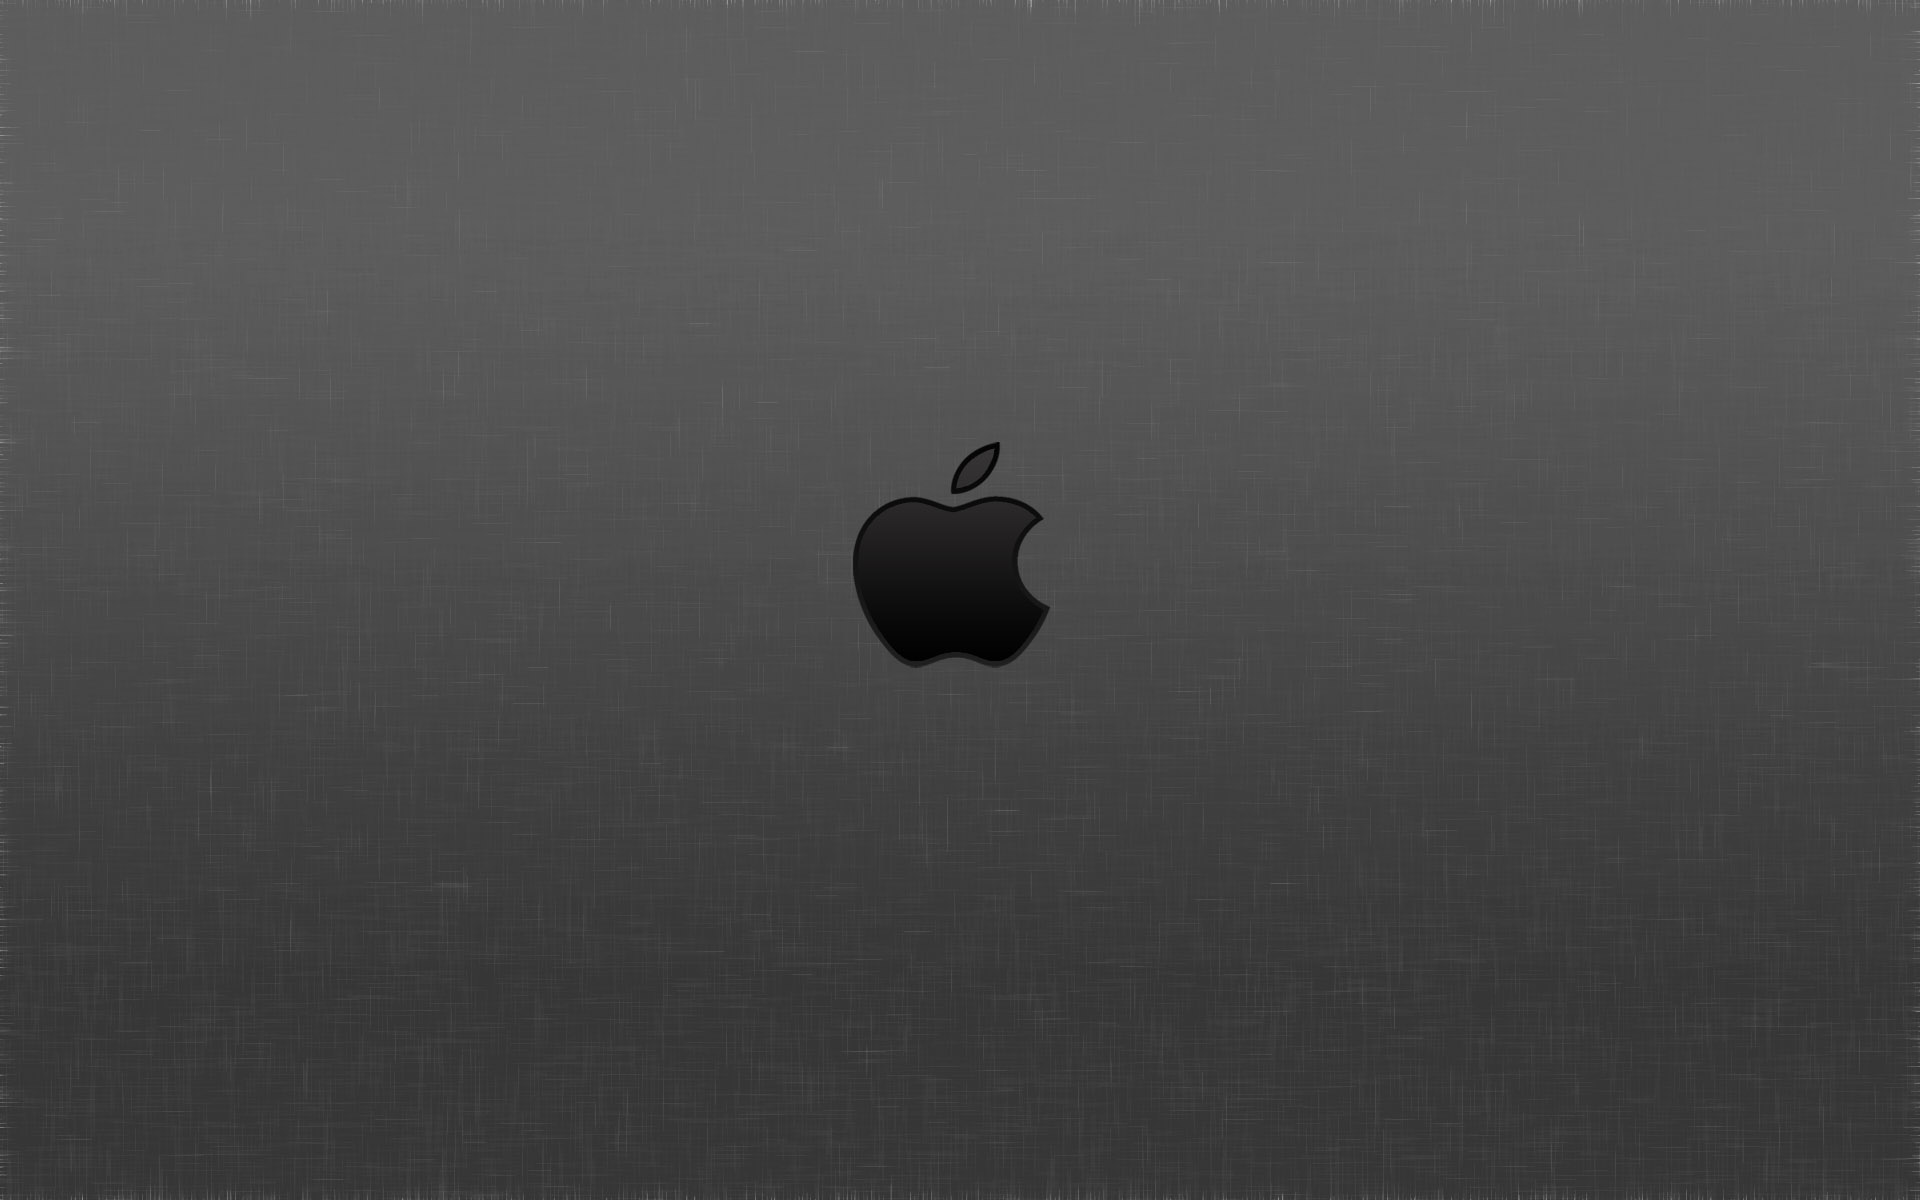 Gray Apple Logo Wallpaper